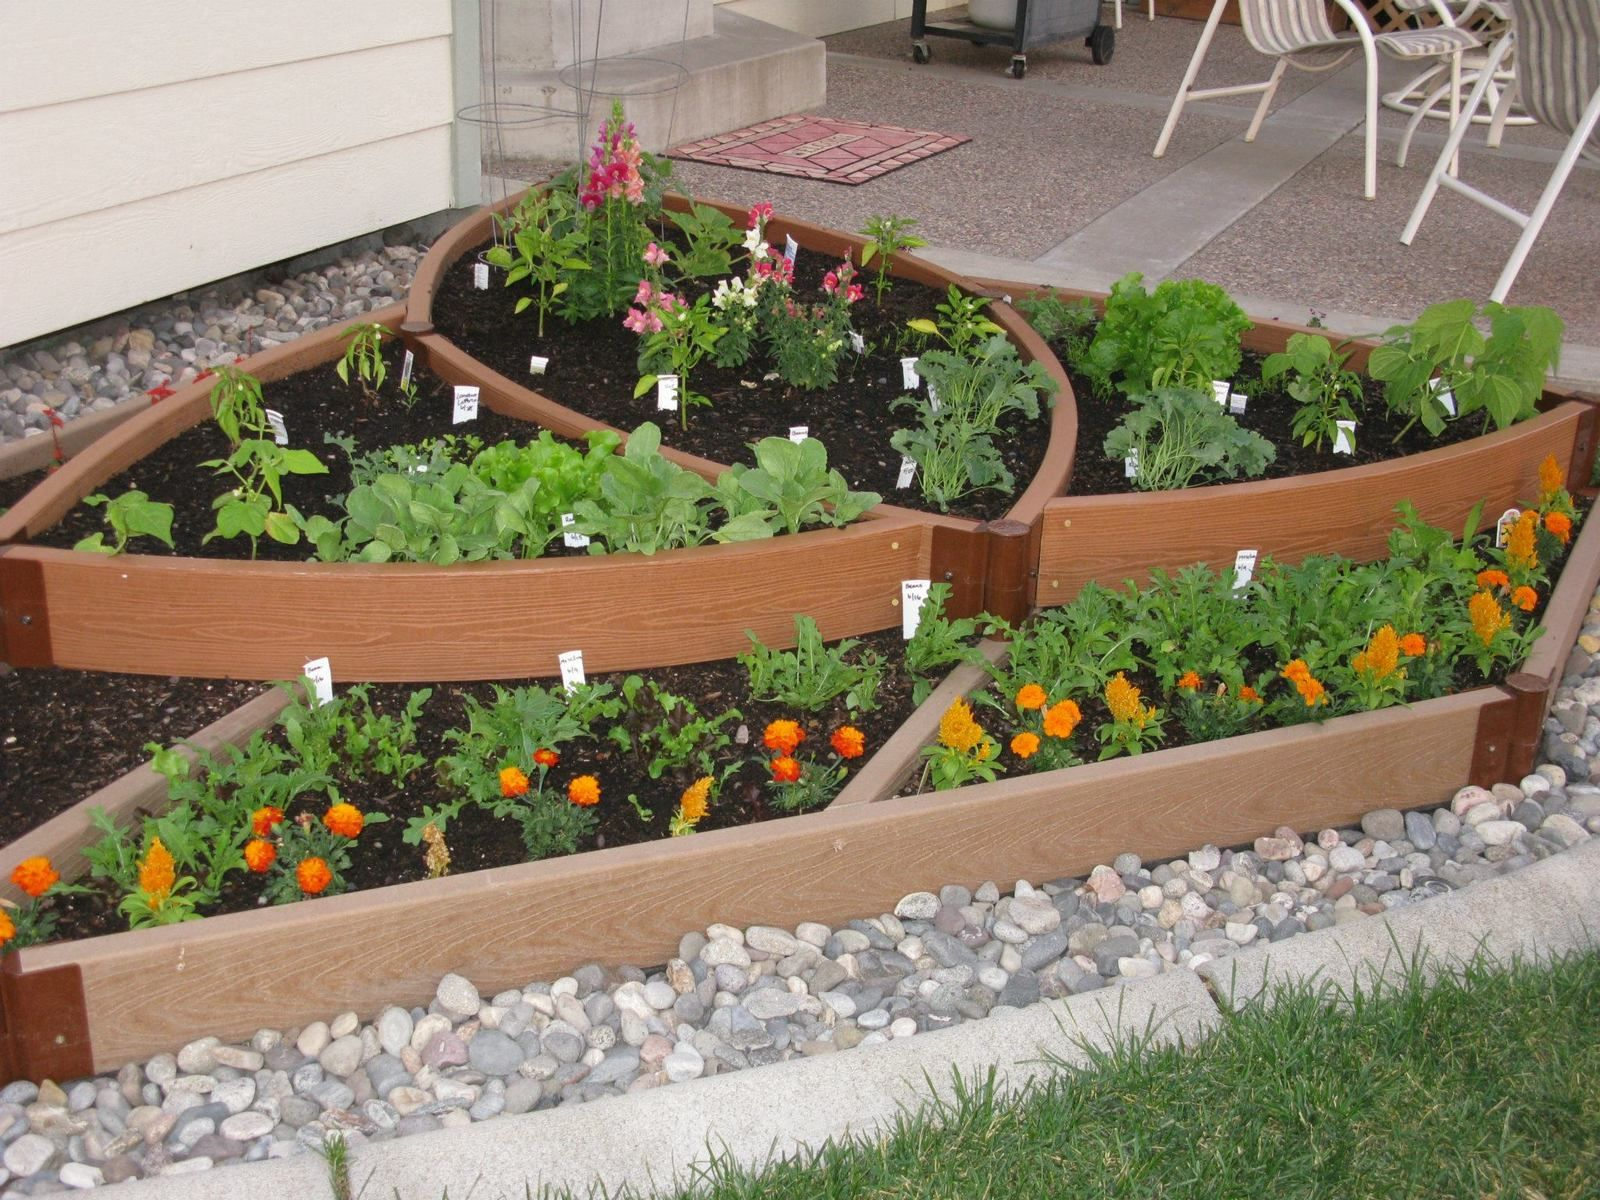 Raised garden raised garden bed kits for sale and buy for Small garden bed ideas